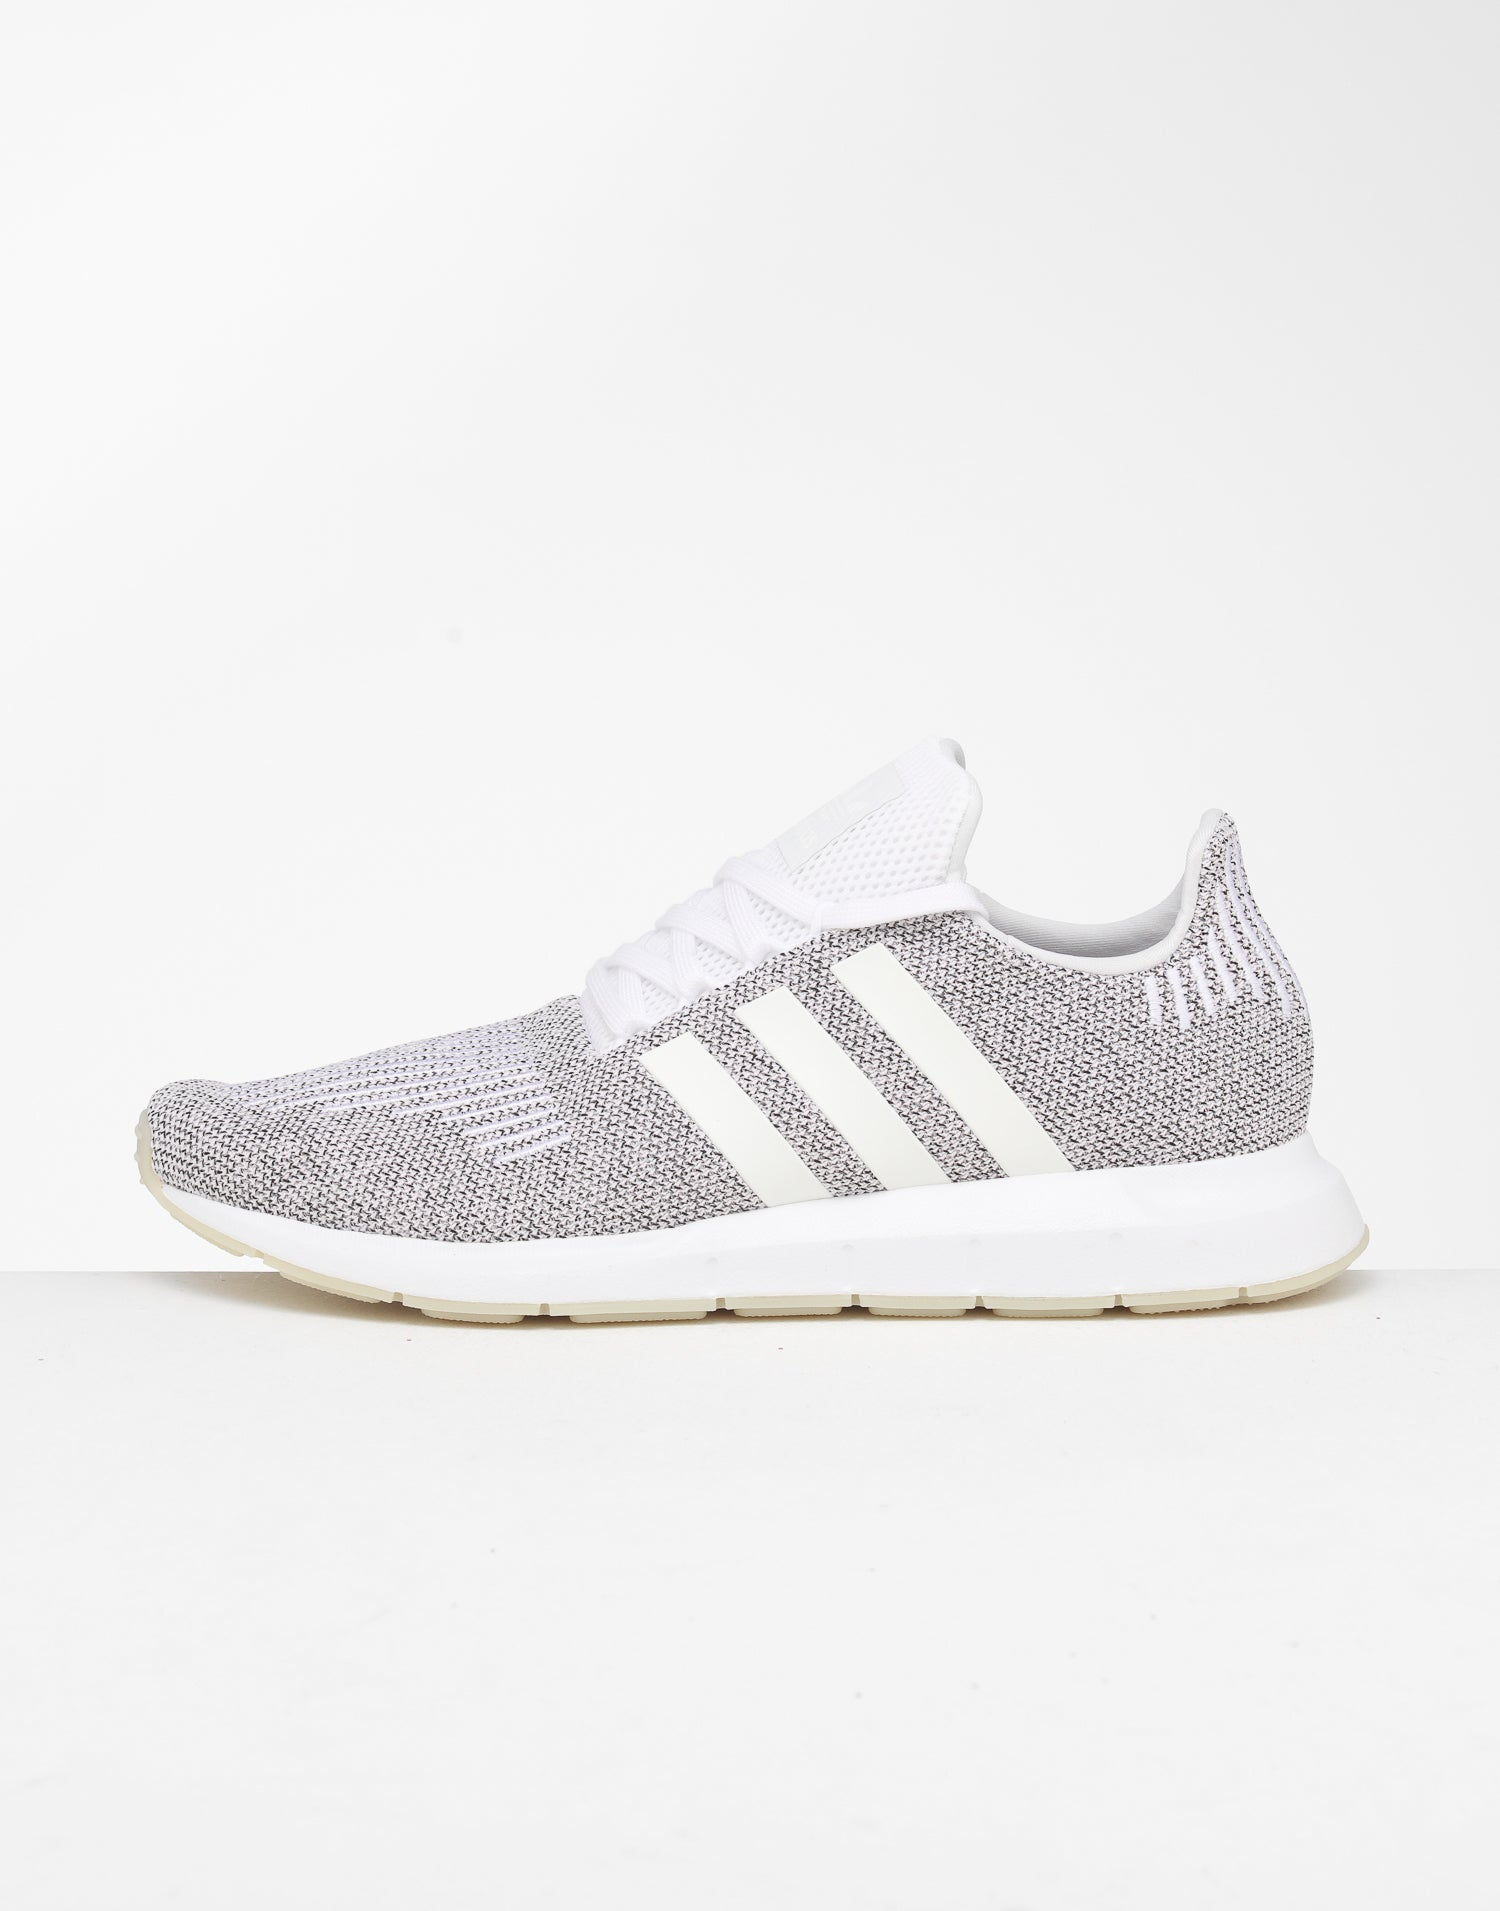 Adidas Swift Run Military Sneakers in Sesame | R | Running Shoes | PriceCheck SA